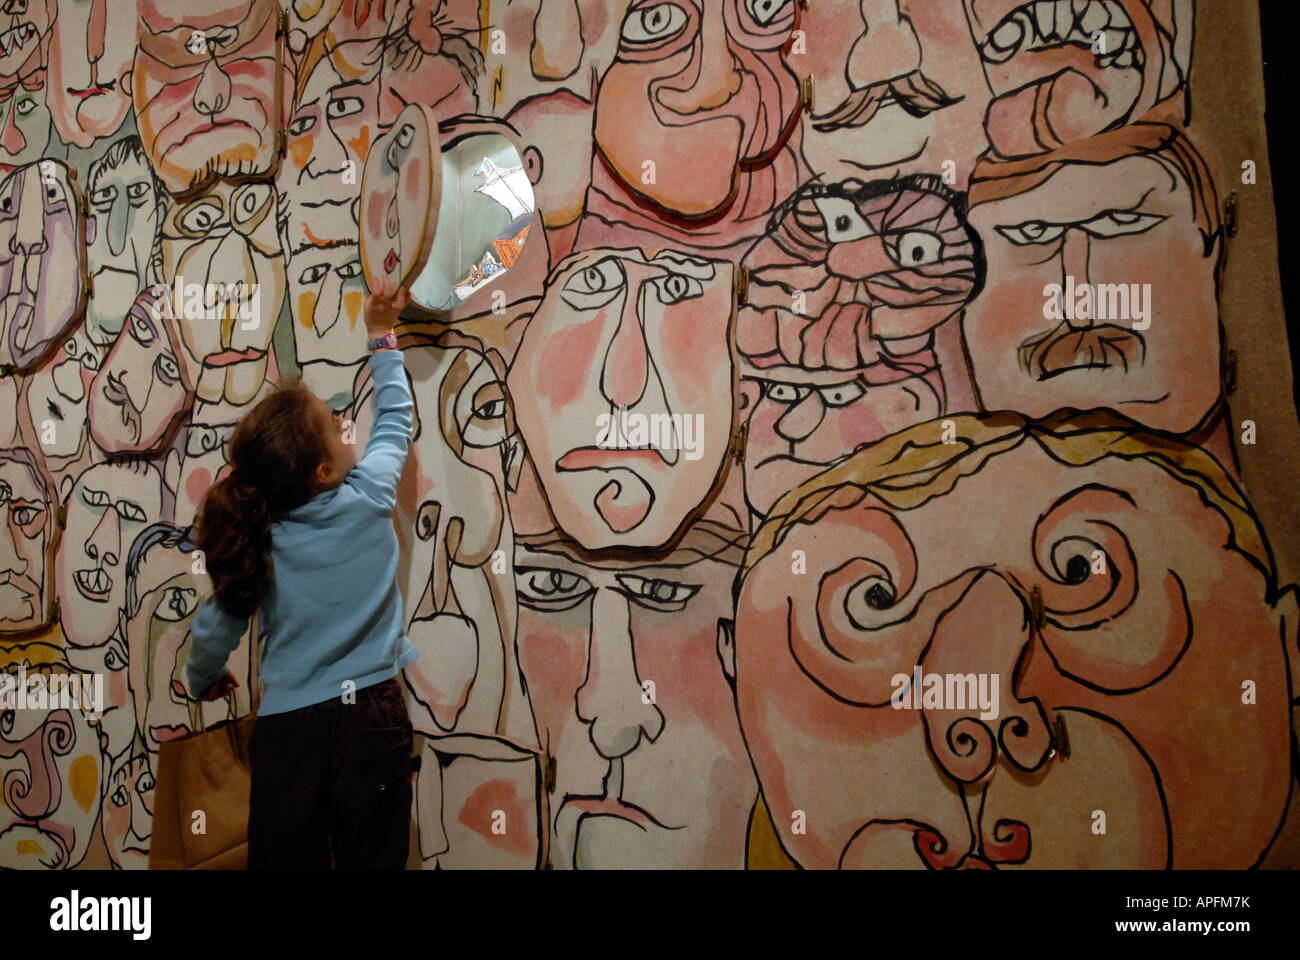 Play the Face Game at the William Steig exhibit at the Jewish Museum in NYC - Stock Image